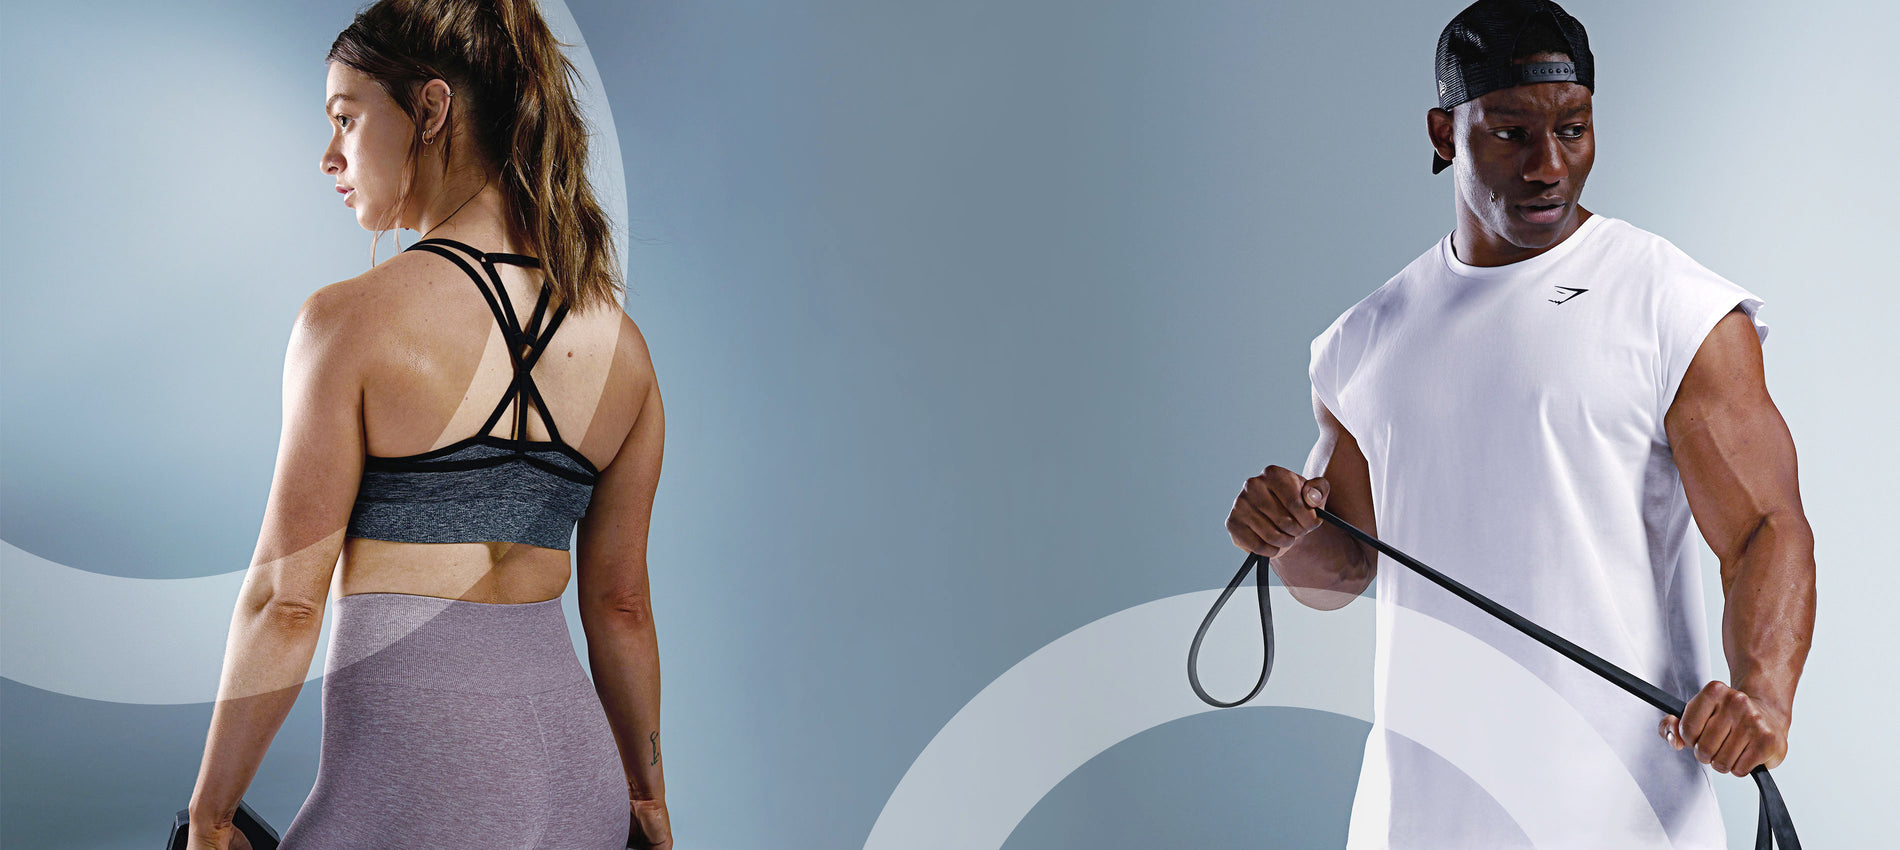 Female athlete wearing the new Adapt Collection and Lubomba wearing the new Critical Collection while posing and working out.